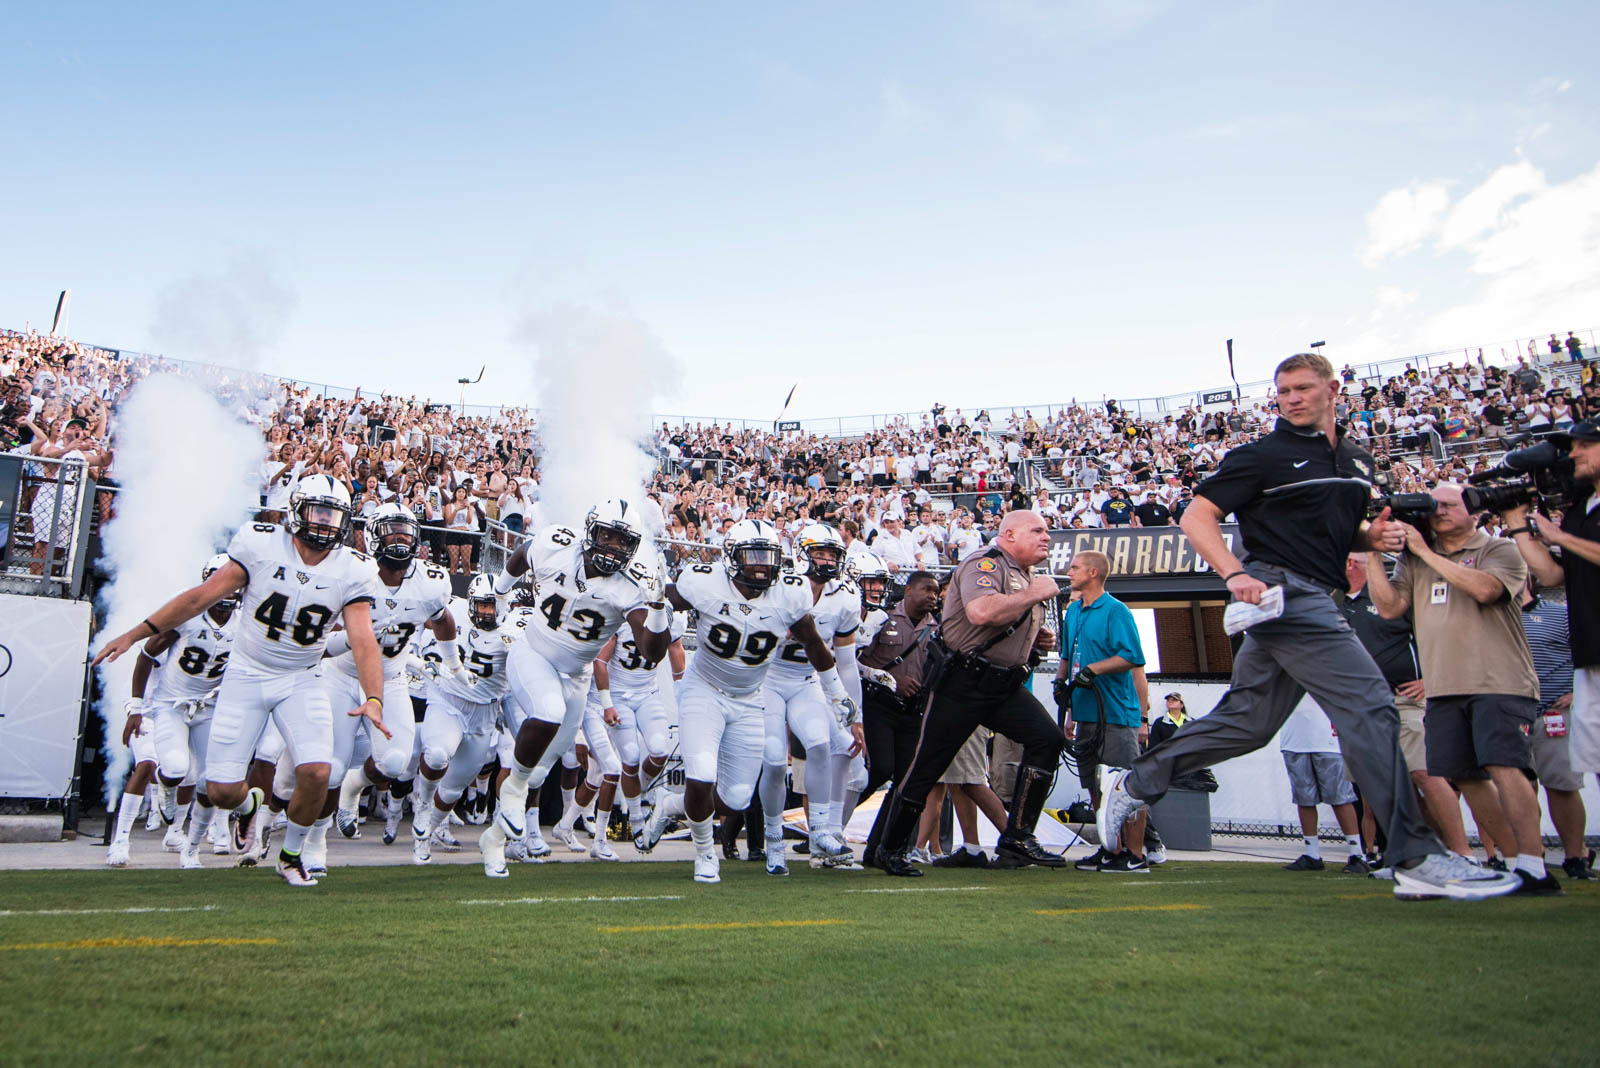 ucf-best-of-photos-scott-frost-football-game